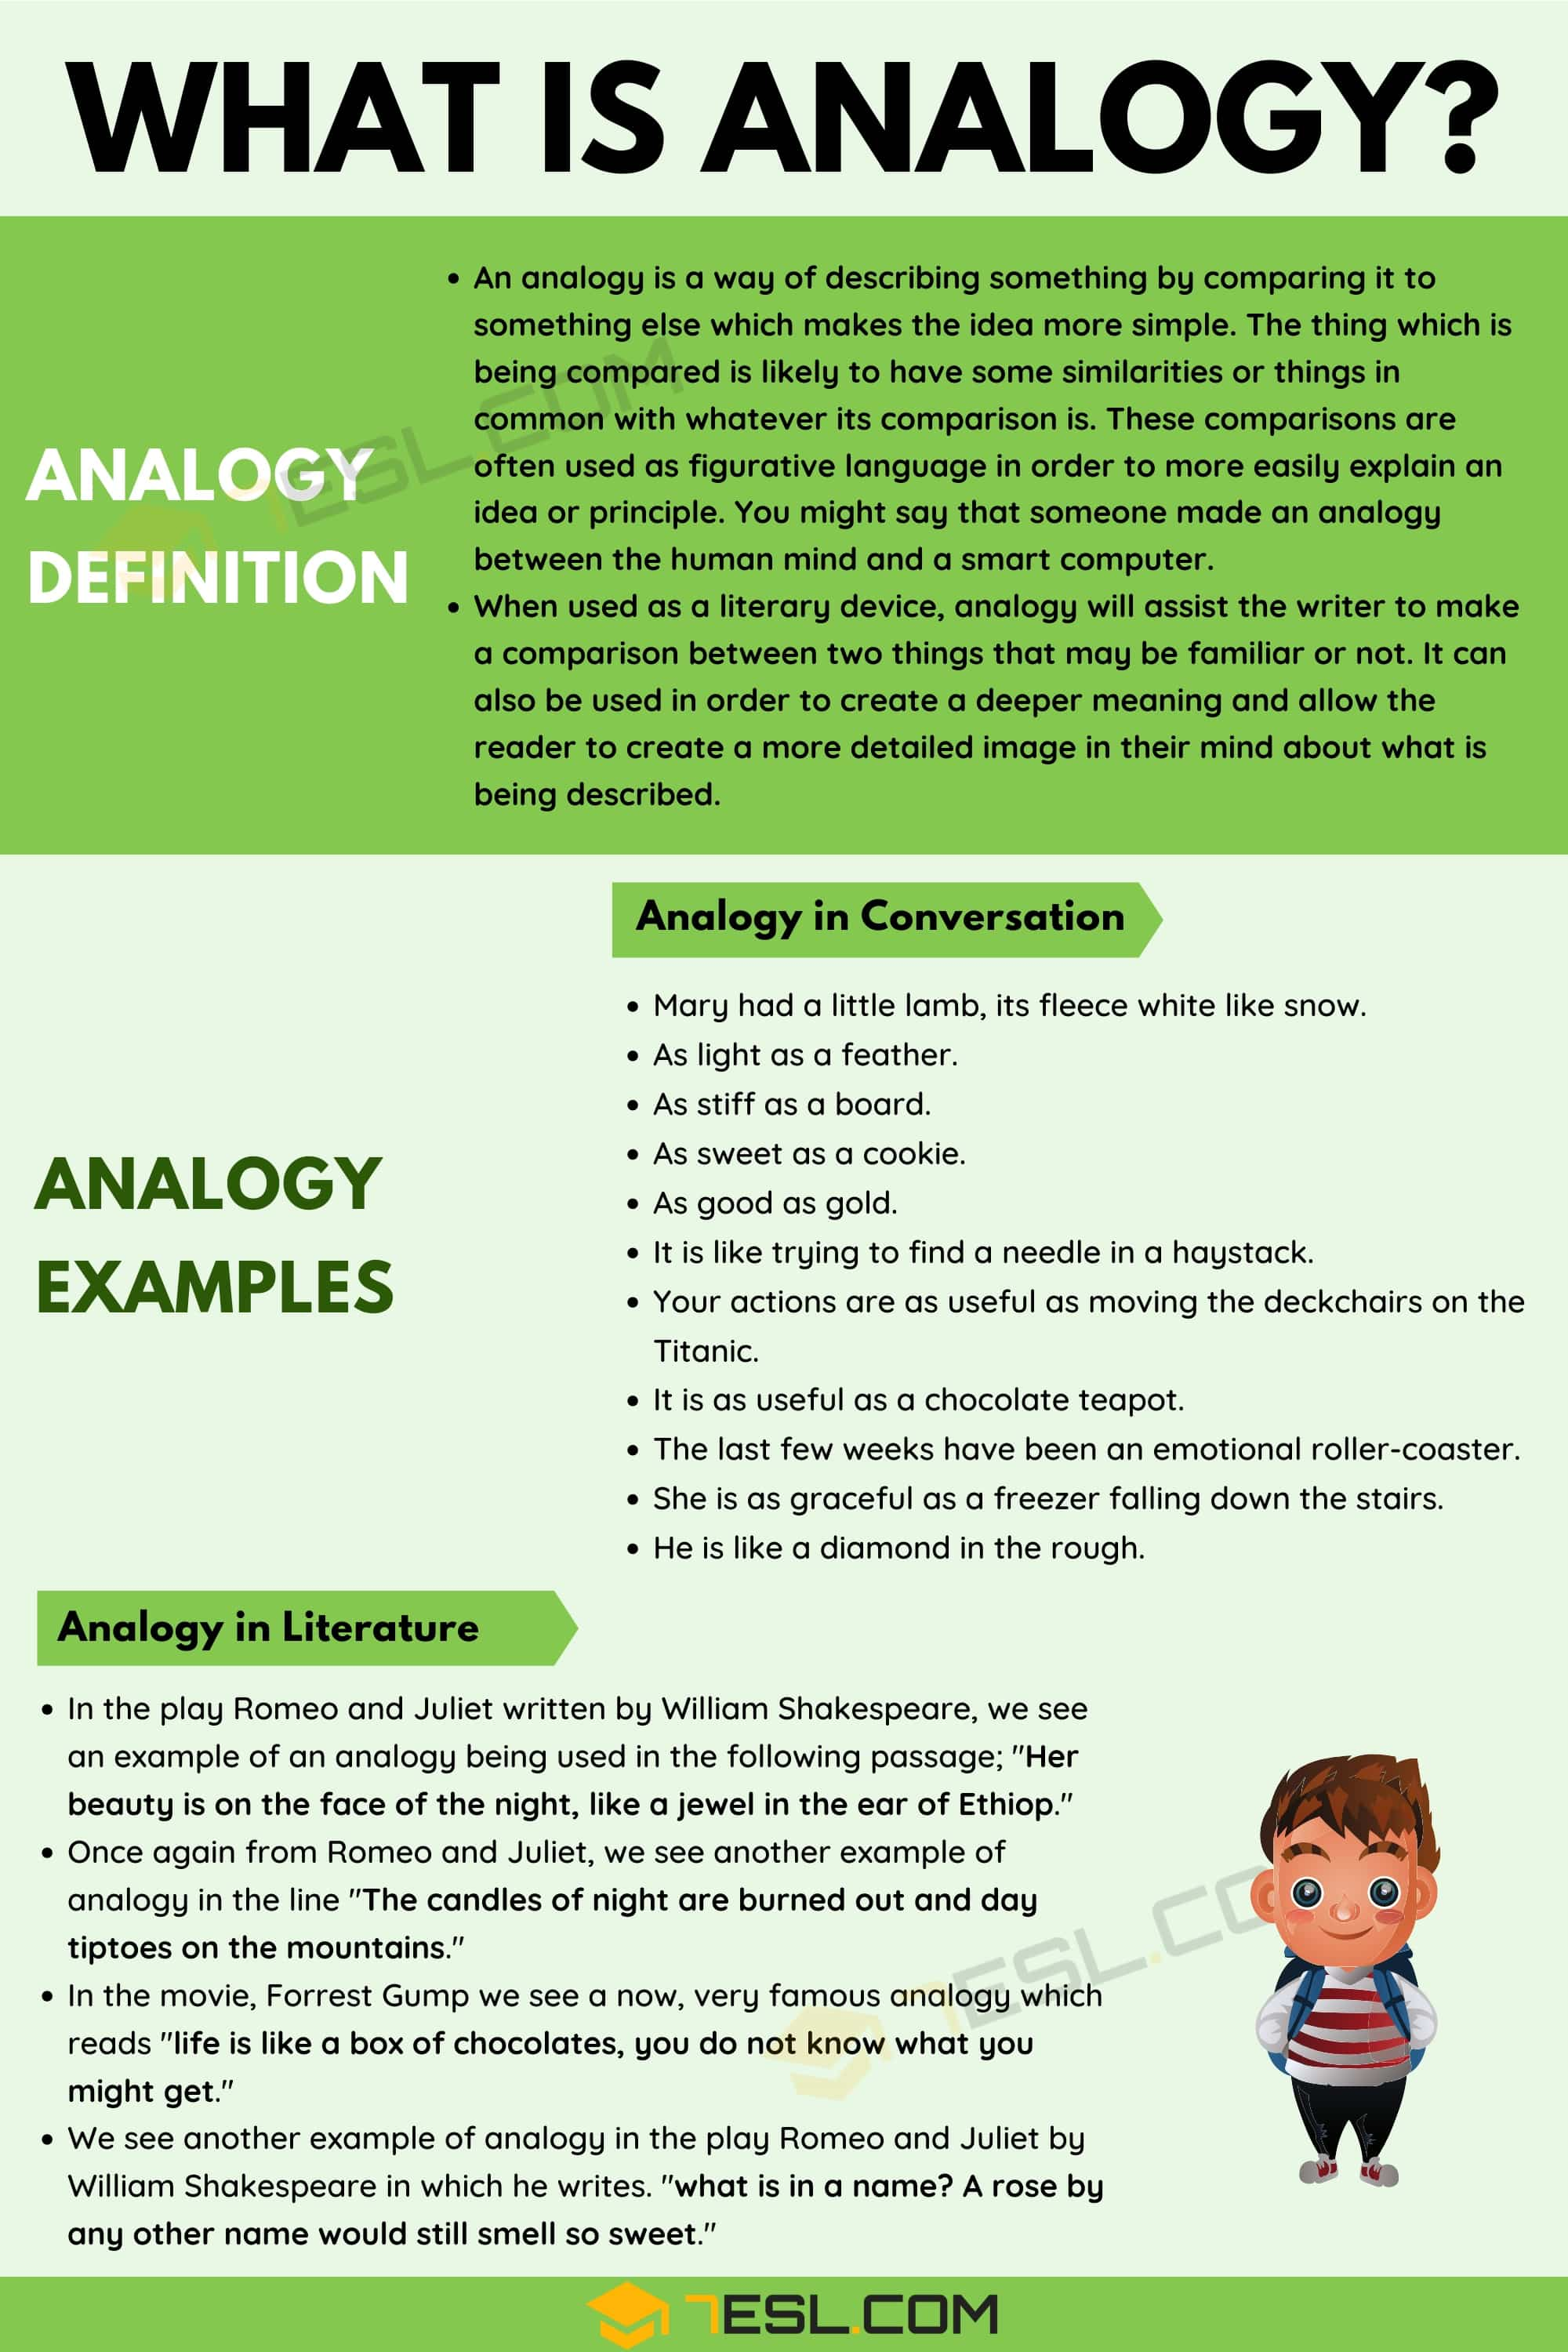 analogy  definition and examples of analogy in